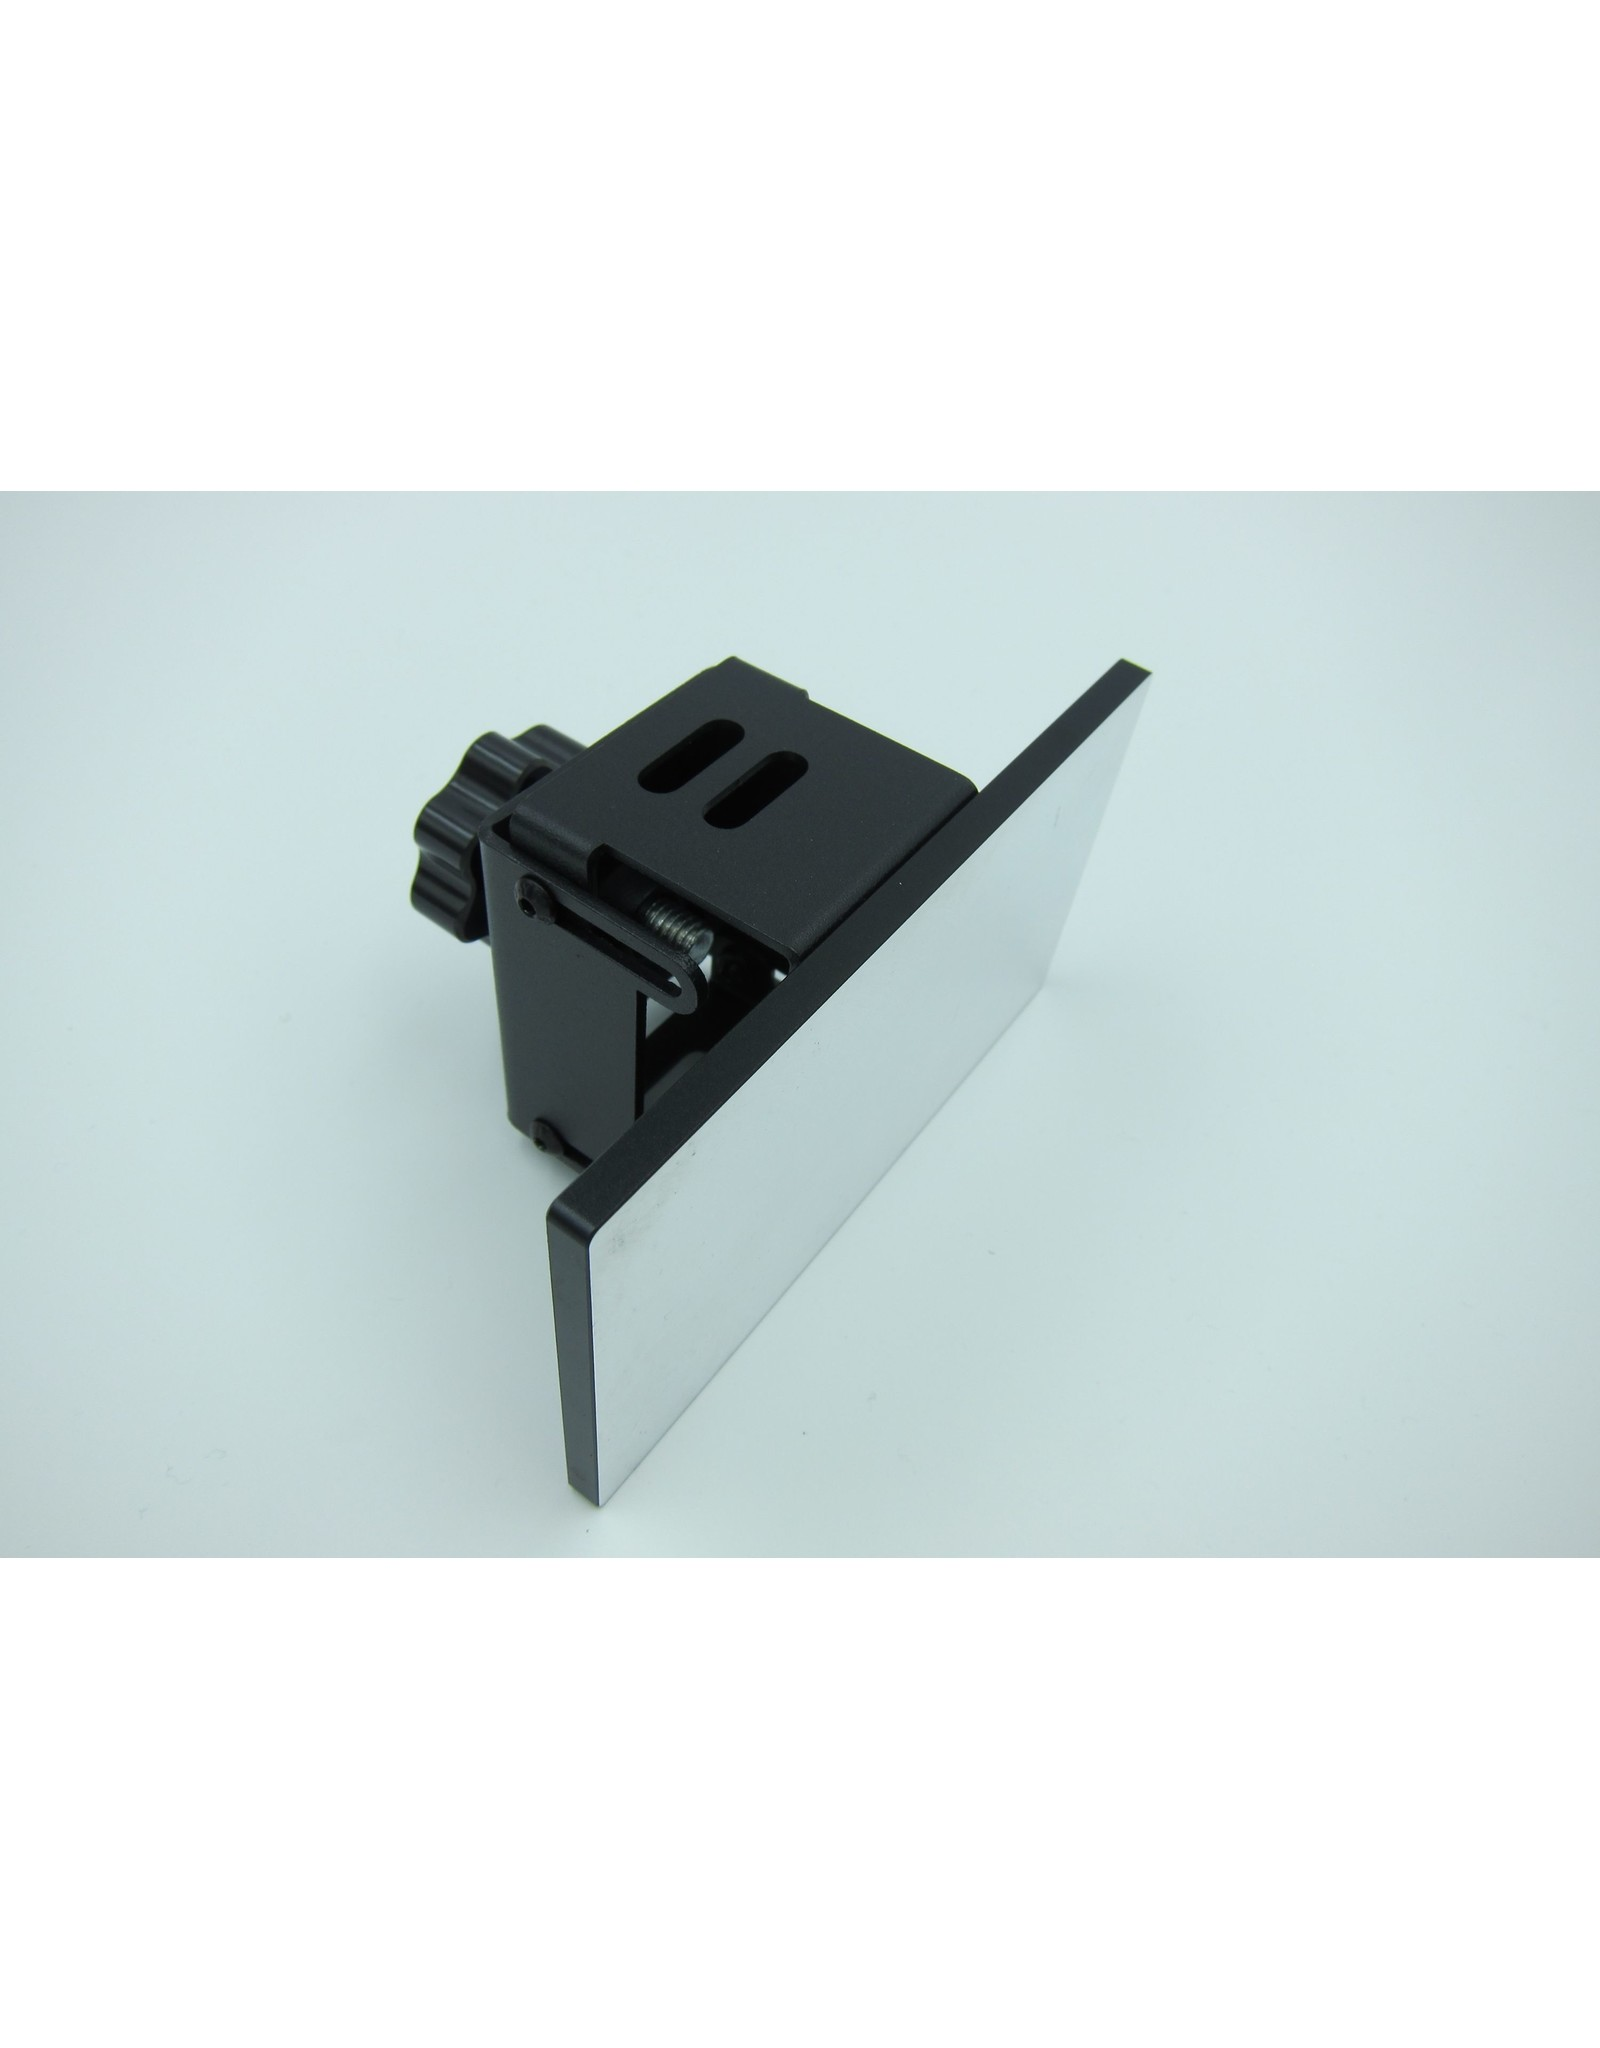 Wanhao Wanhao D7 Building plate with mount bracket